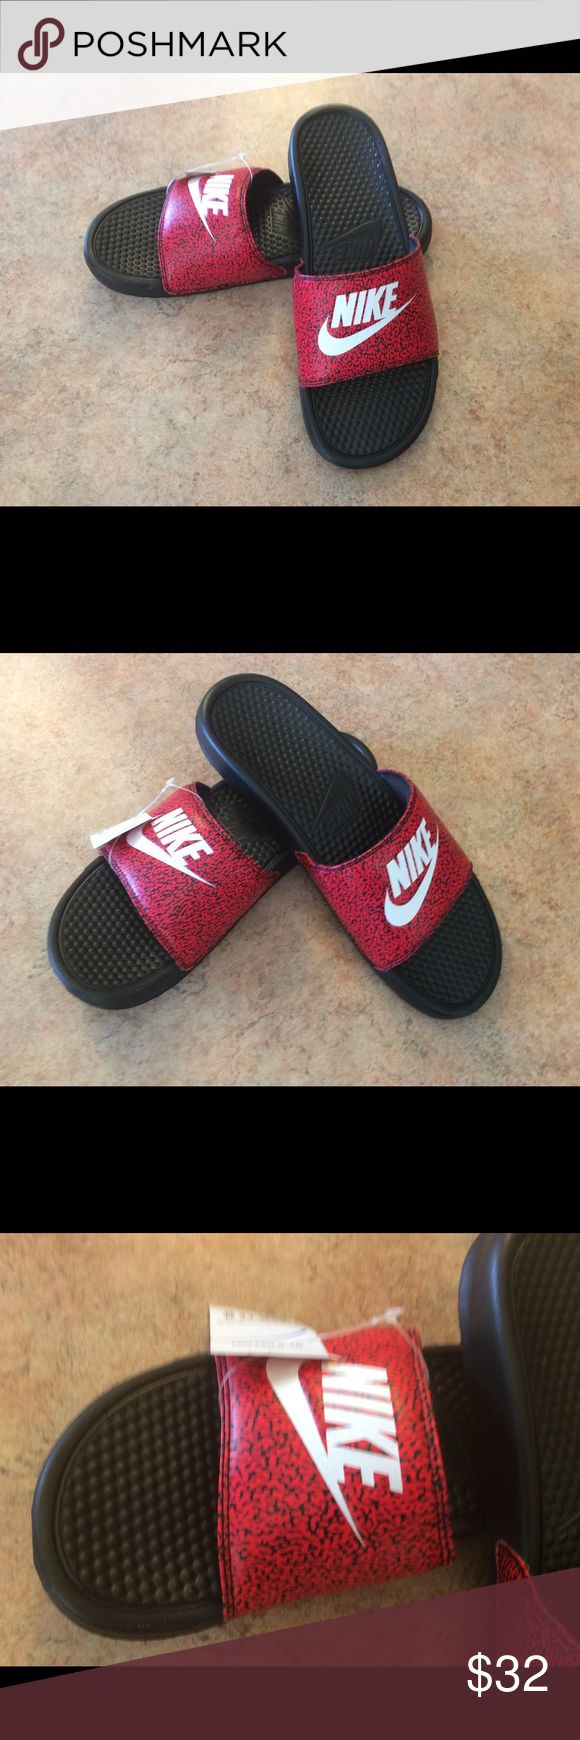 NWT men's Benassi Jdi print slides New with tags men's Benassi print slides Nike Shoes Sandals & Flip-Flops